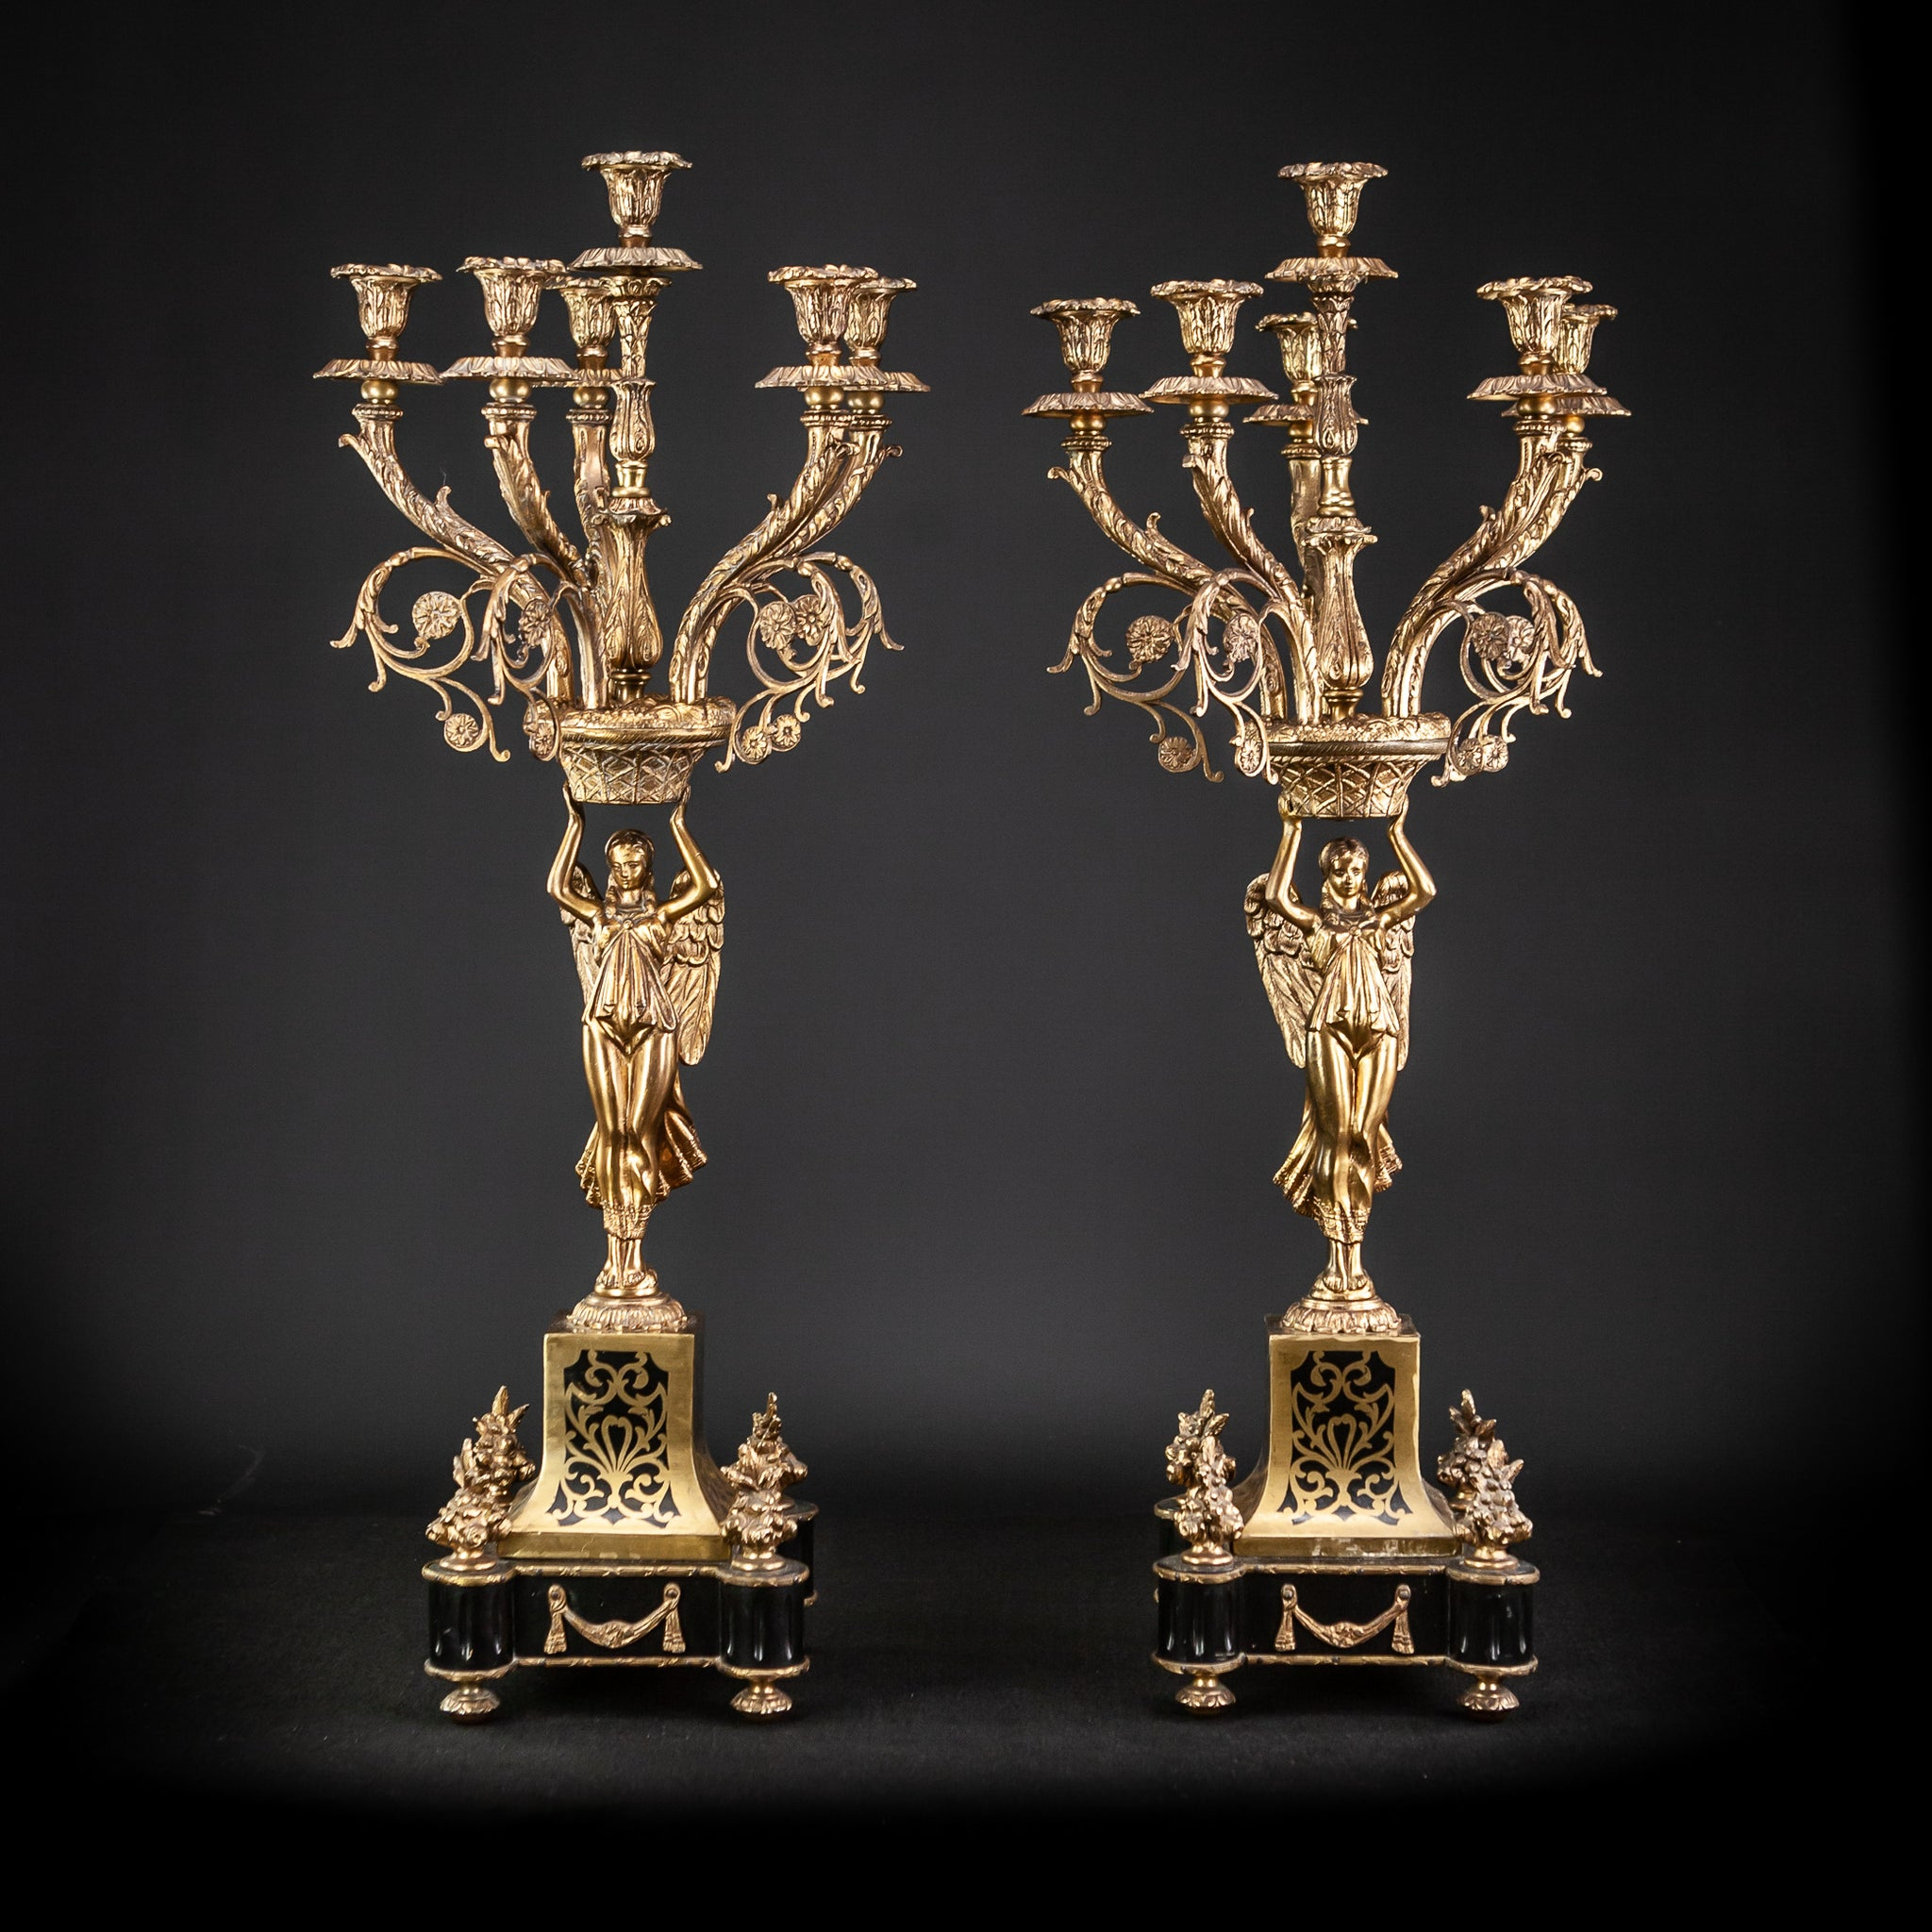 Pair of Large Bronze Candelabras with Angels | 20.5""